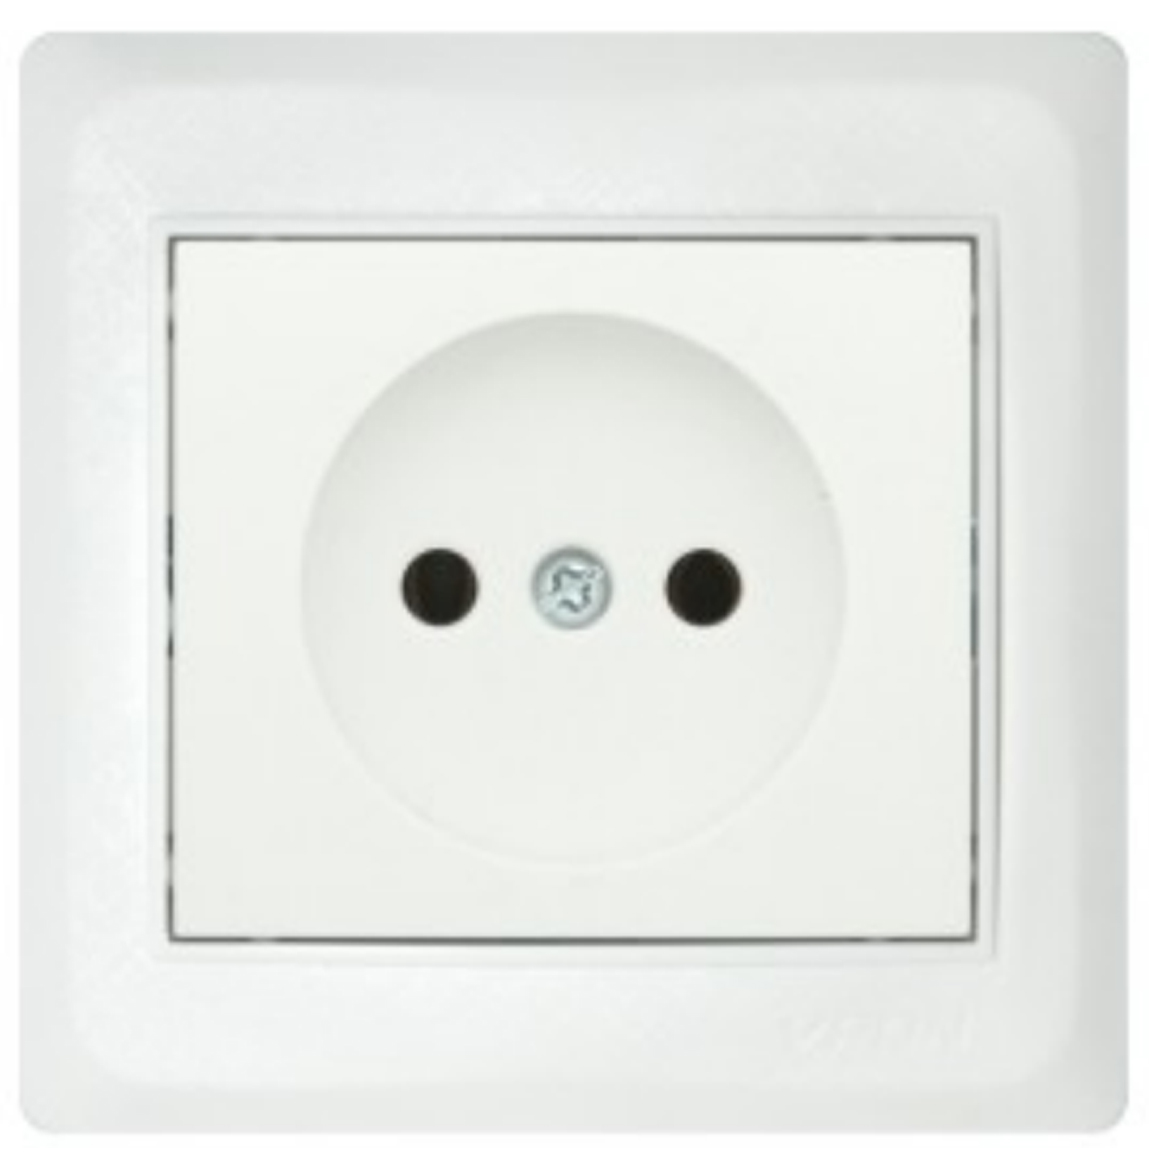 Neo Series Wall switch and socket